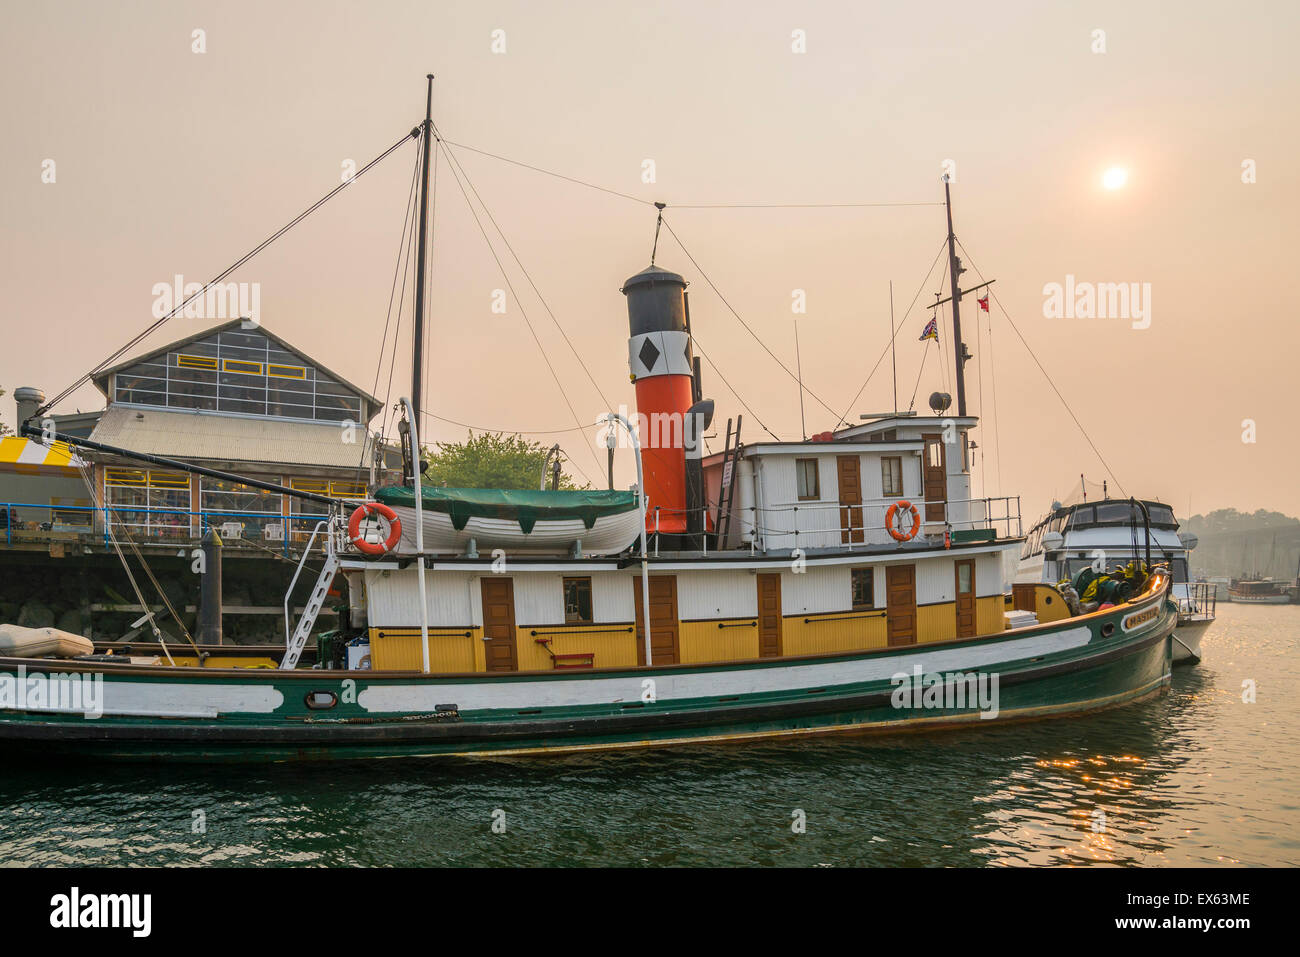 S.S. Master, steam powered tug boat, docked at Granville Island, False Creek, Vancouver, British Columbia Canada - Stock Image